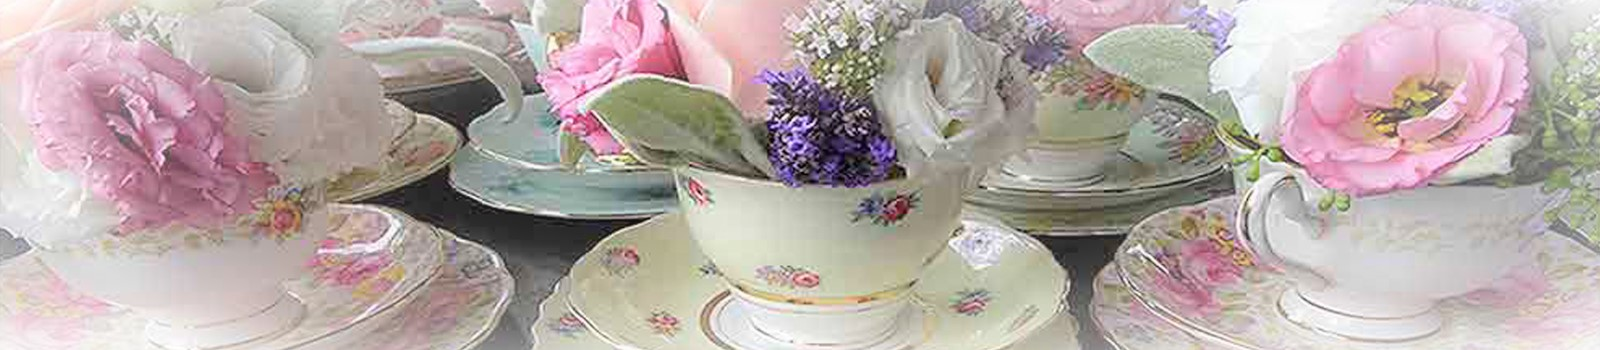 Vintage-cups-Floral-arrangement-Vintage-China-Hire-Napier-NZ